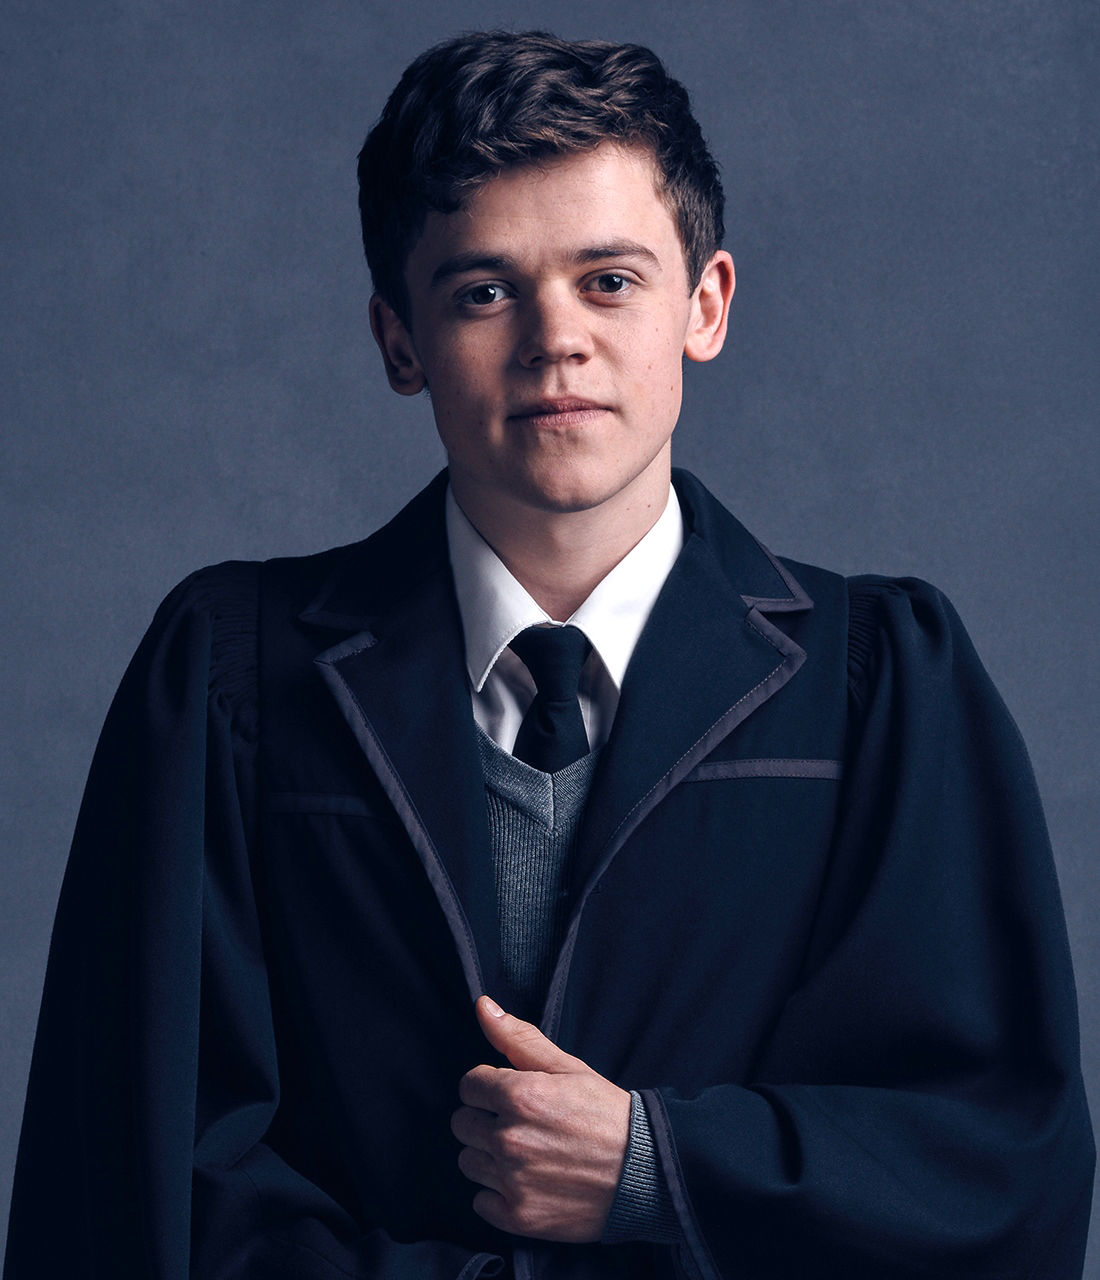 Albus Potter | Harry Potter Wiki | FANDOM powered by Wikia